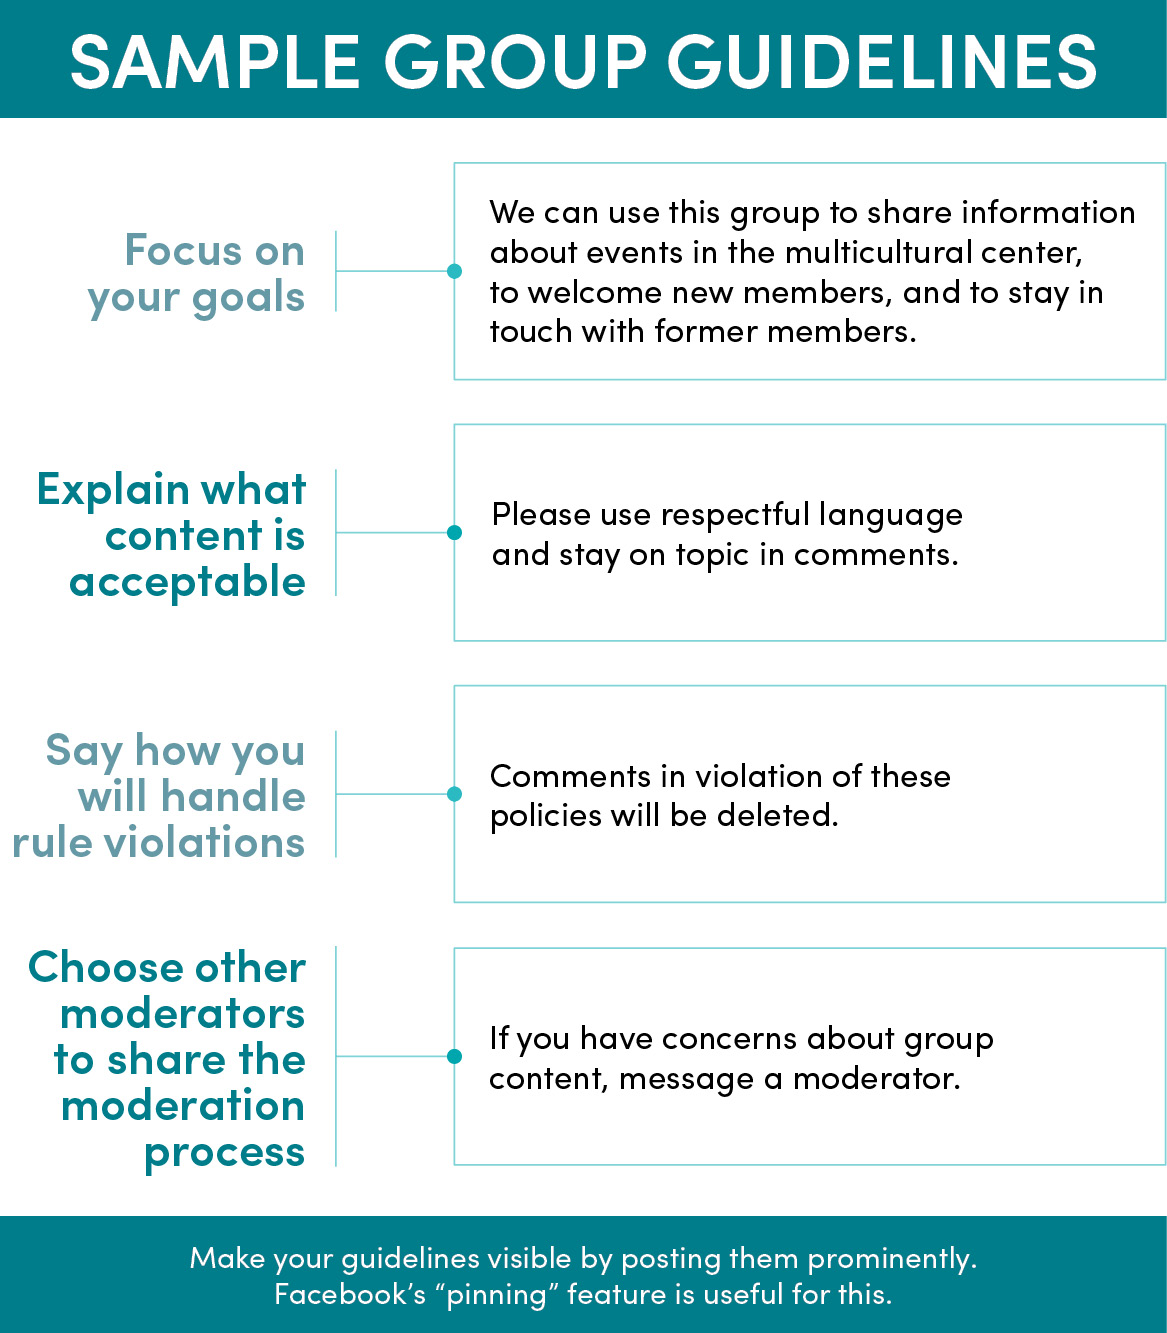 """HEADING: Sample group guidelines. 1) focus on your goals: We can use this group to share information about events in the multicultural center, to welcome new members, and to stay in touch with former members. 2) Explain what content is acceptable: Please use respectful language and stay on topic in comments. 3) Say how you will handle rule violations: Comments in violation of these policies will be deleted. 4) Choose other moderators to share the moderation process: If you have concerns about group content, message a moderator. FOOTER: Make your guidelines visible by posting them prominently. Facebook's """"pinning"""" feature is useful for this."""